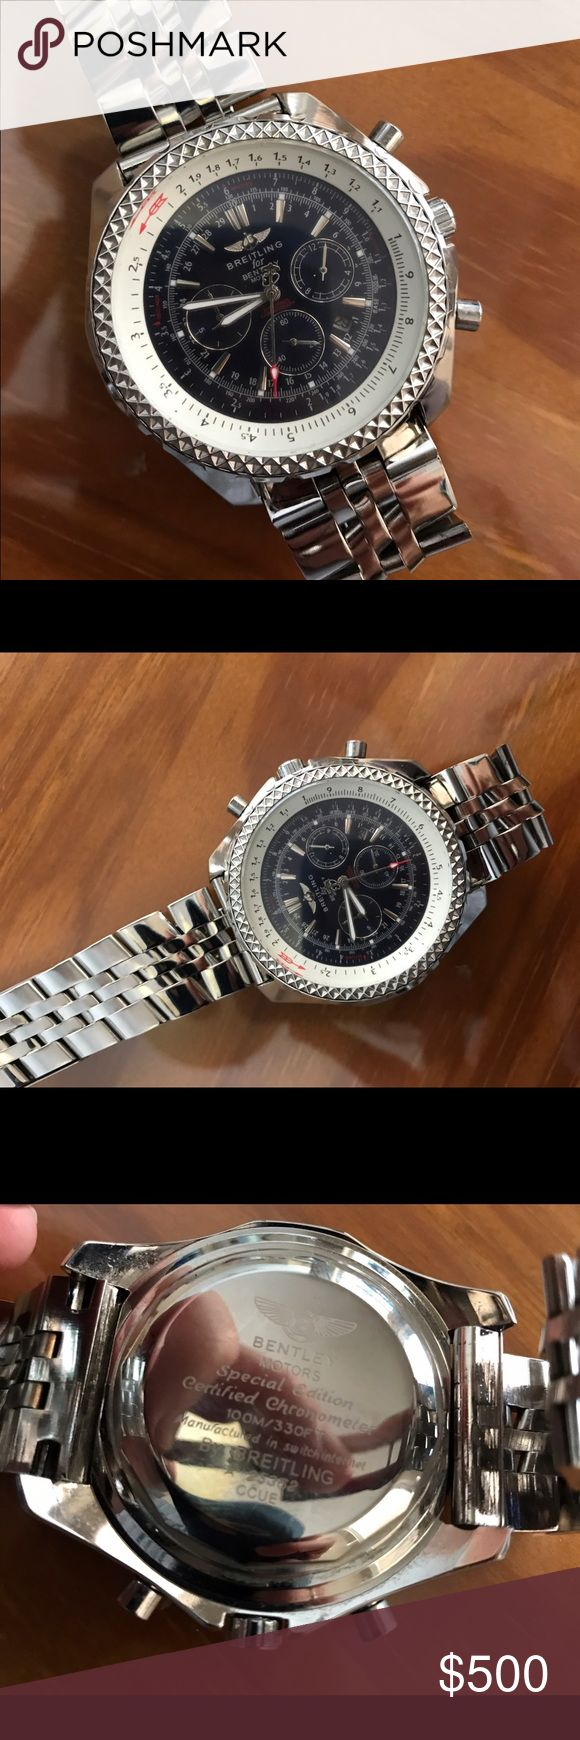 Breitling Watch Mens Bentley Special Edition Breitling Watch Mens Bentley Special Edition. Beautiful watch in excellent condition. I do not have receipt or proof of authenticity but as far as I know, the watch is real, however I cannot guarantee it. This is why the price is so low. Breitling Accessories Watches